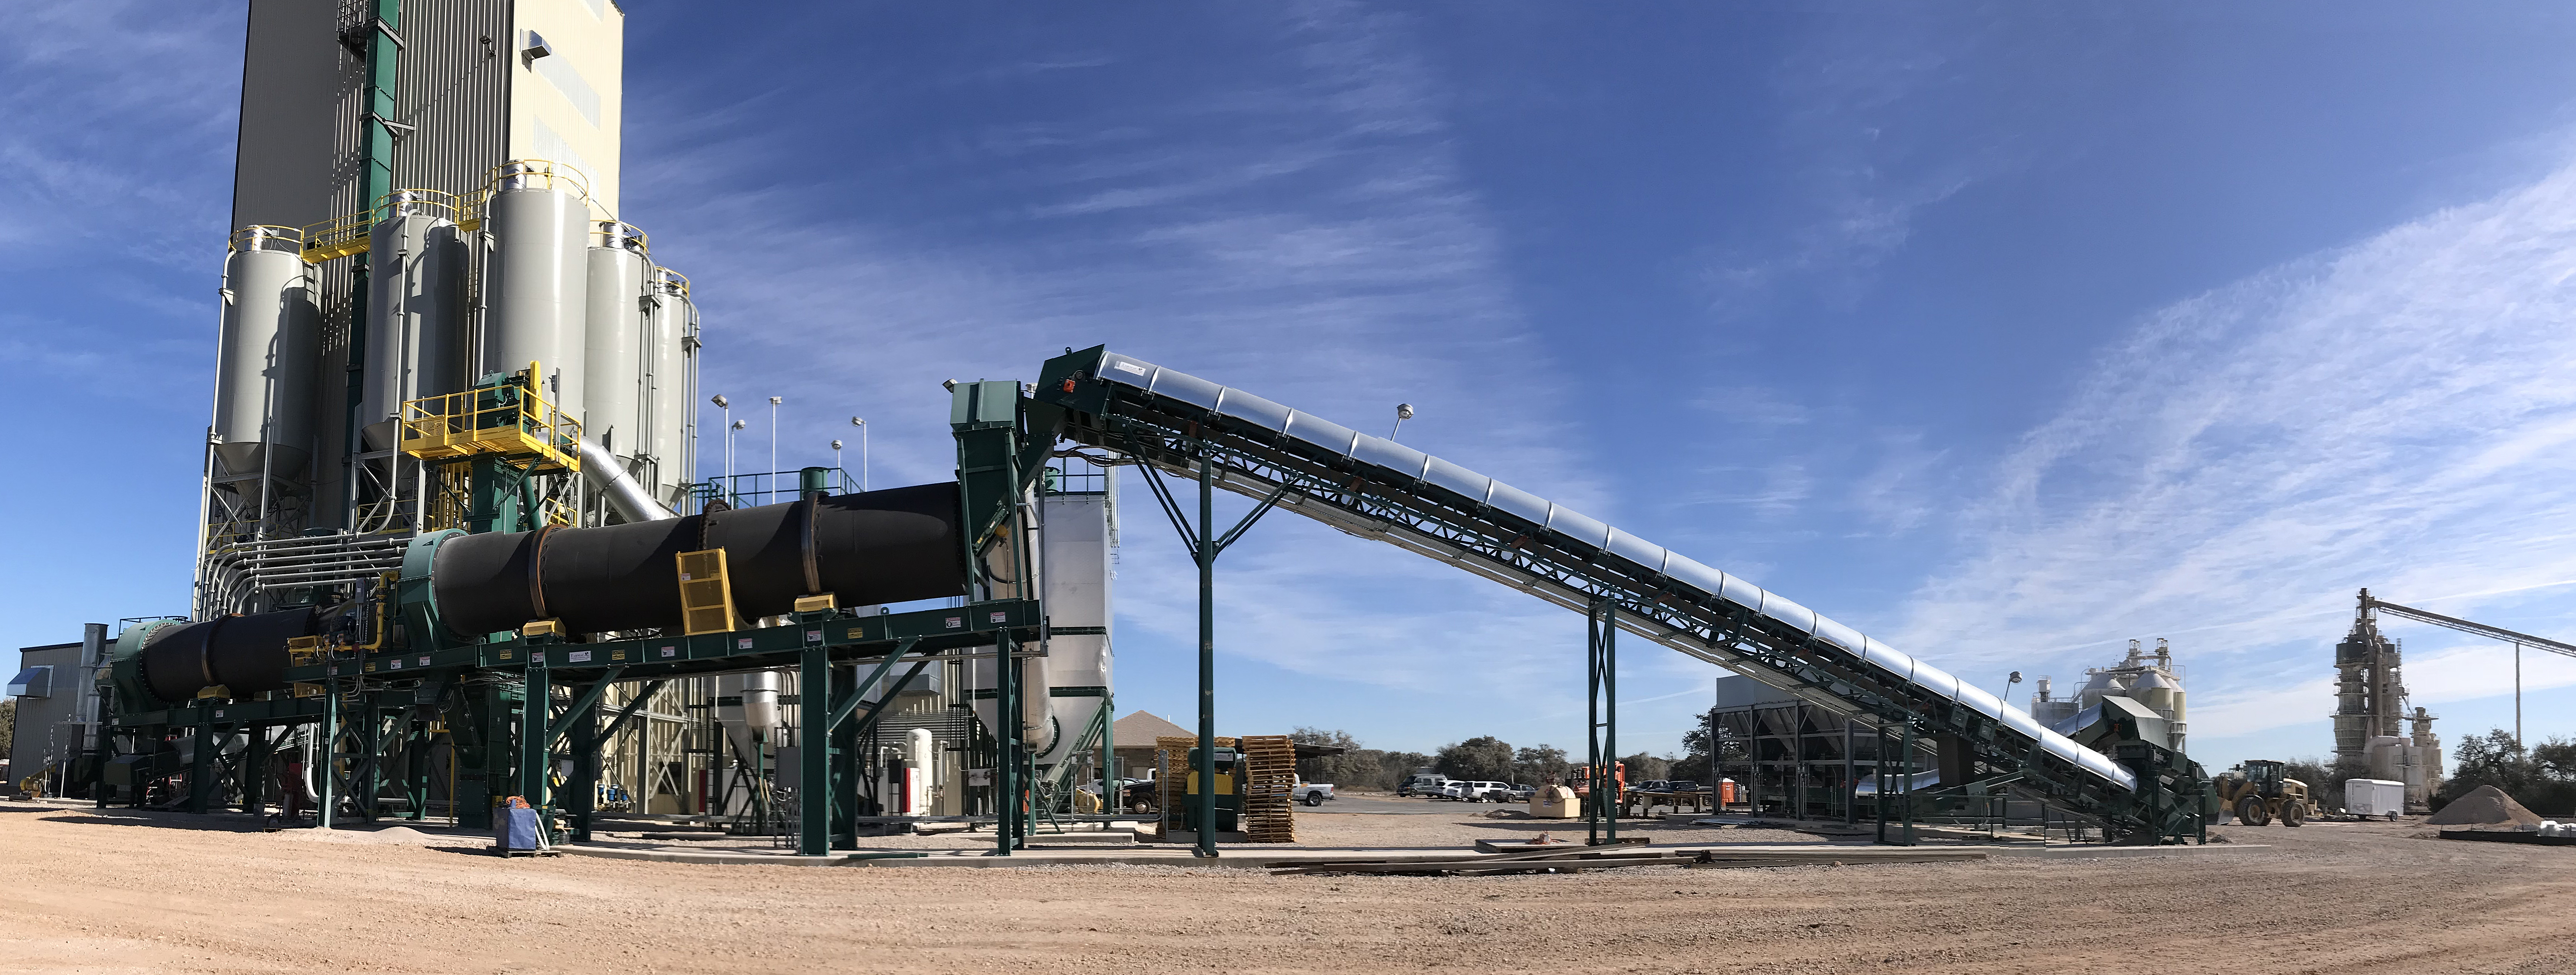 Tarmac Rotary Thermal Dryer and Rotary Cooler - Aggregate Bagging System Commissioning